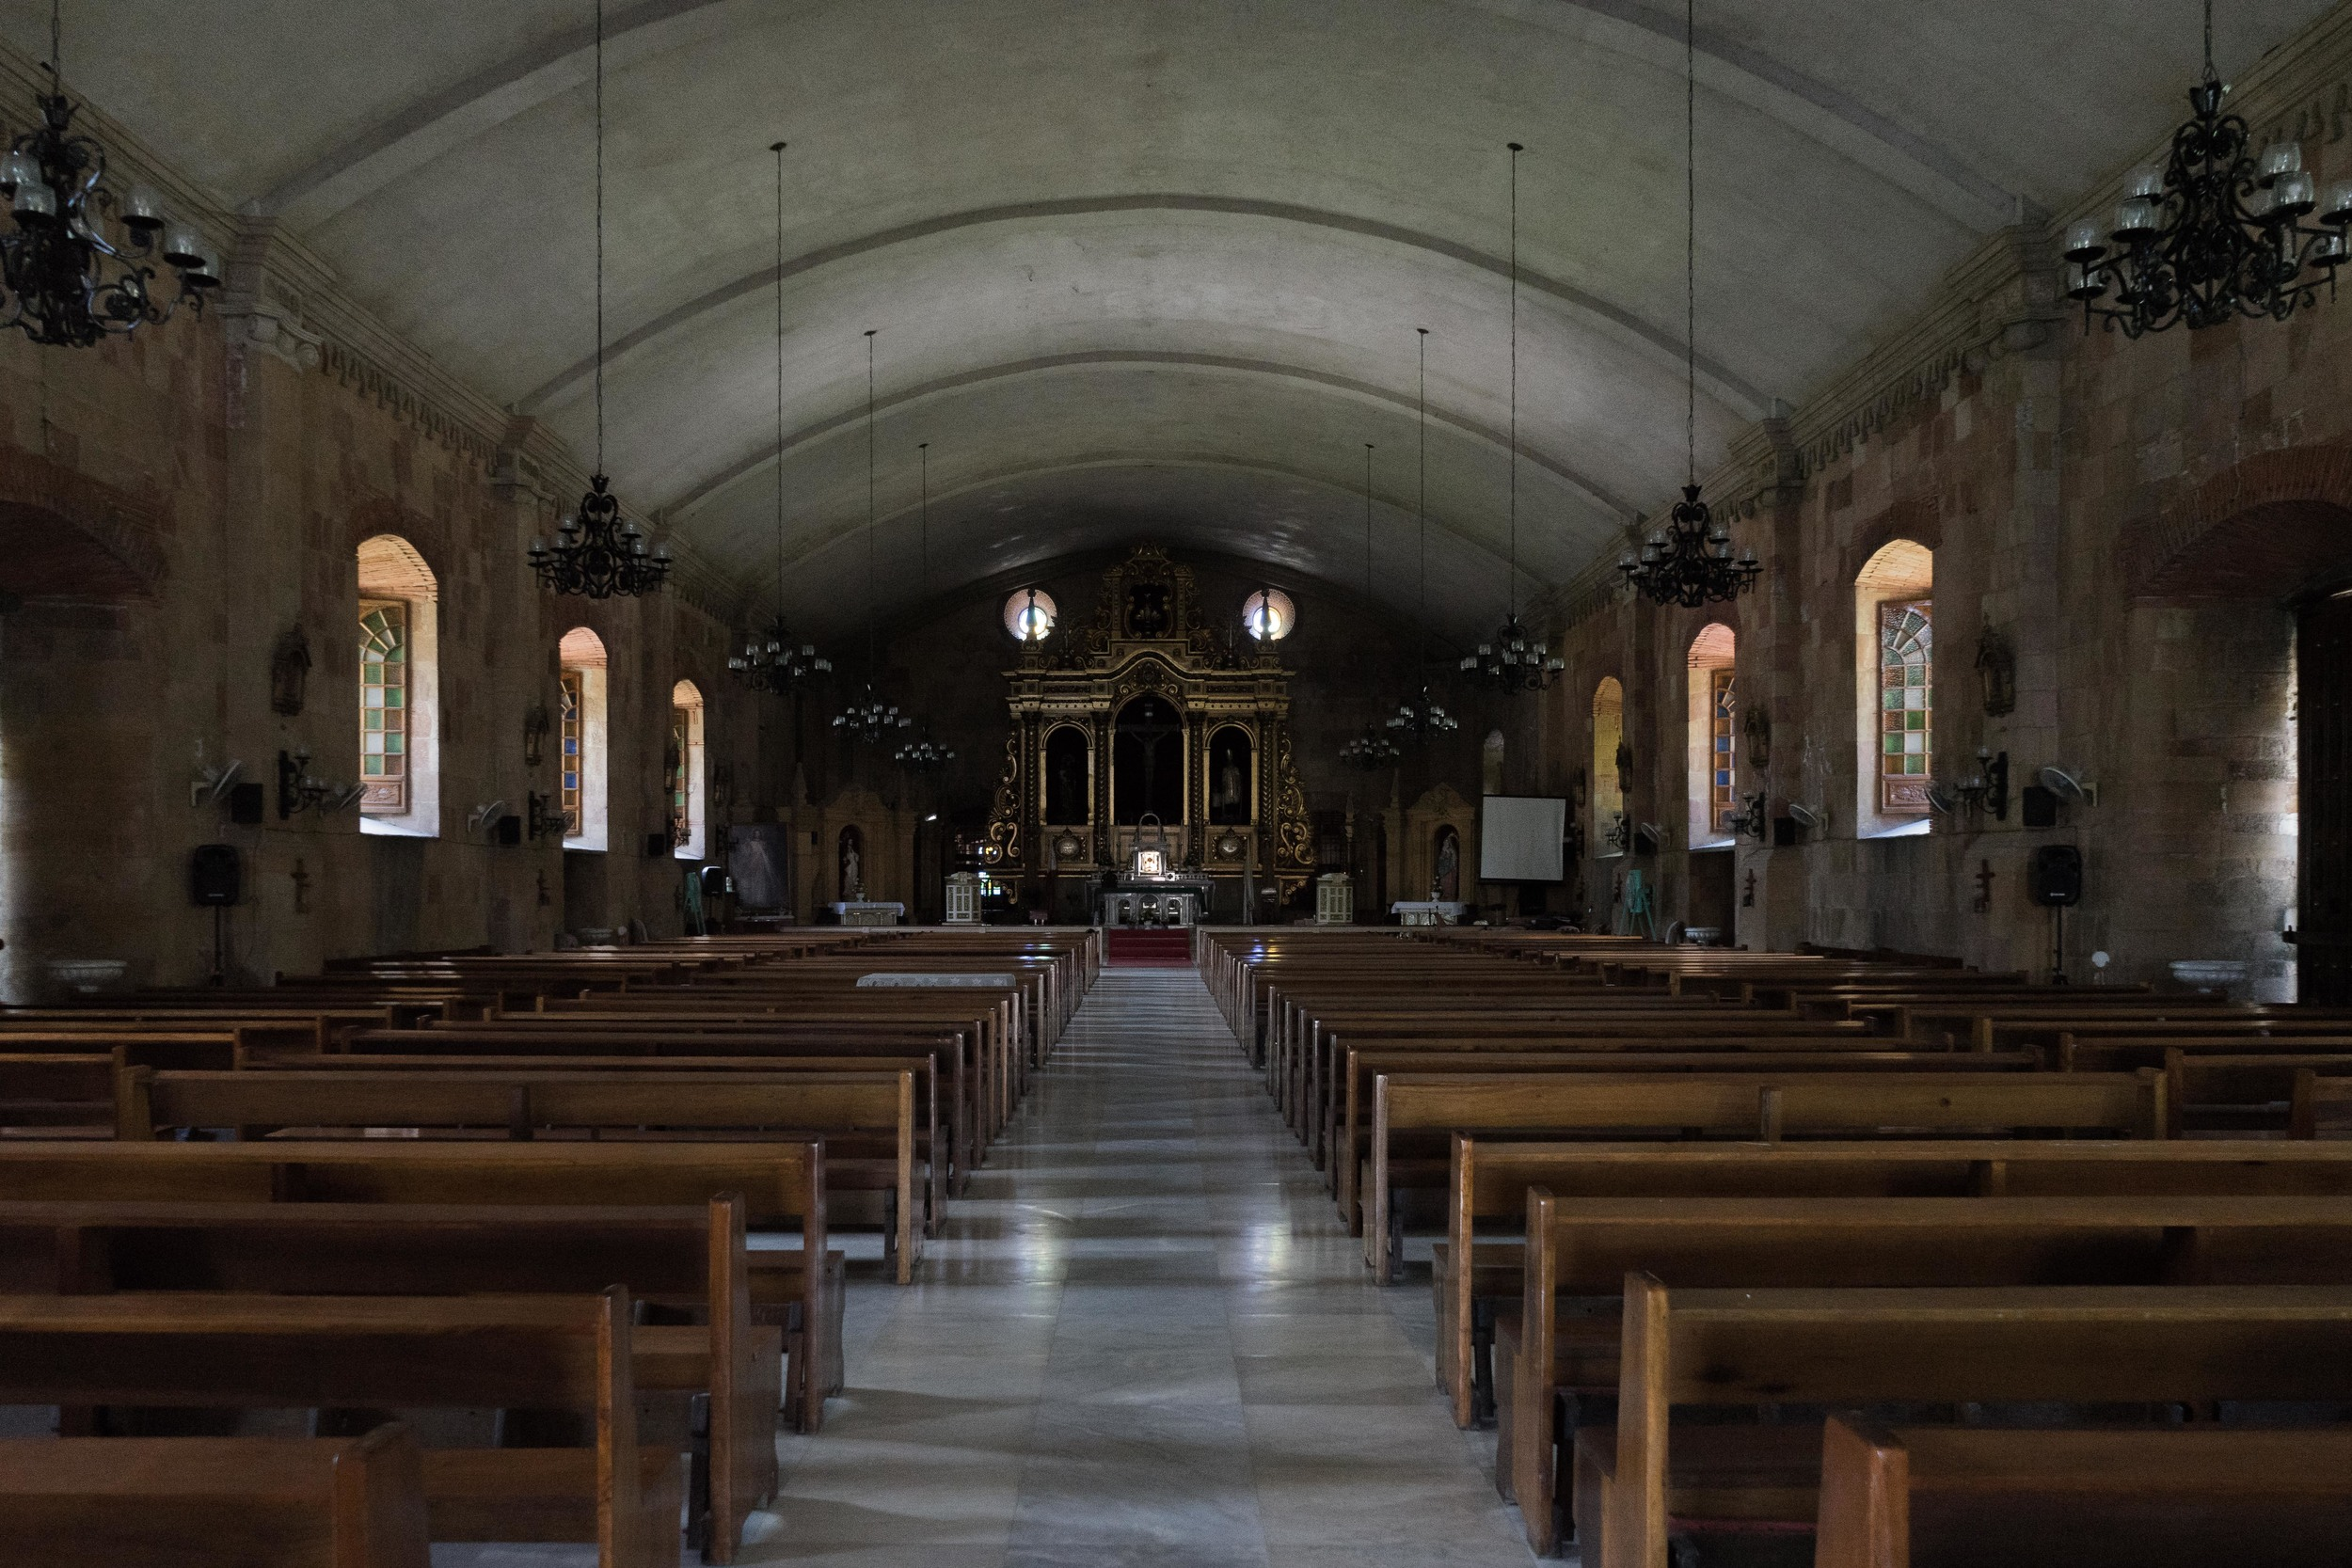 Interior of the Miag-ao Church